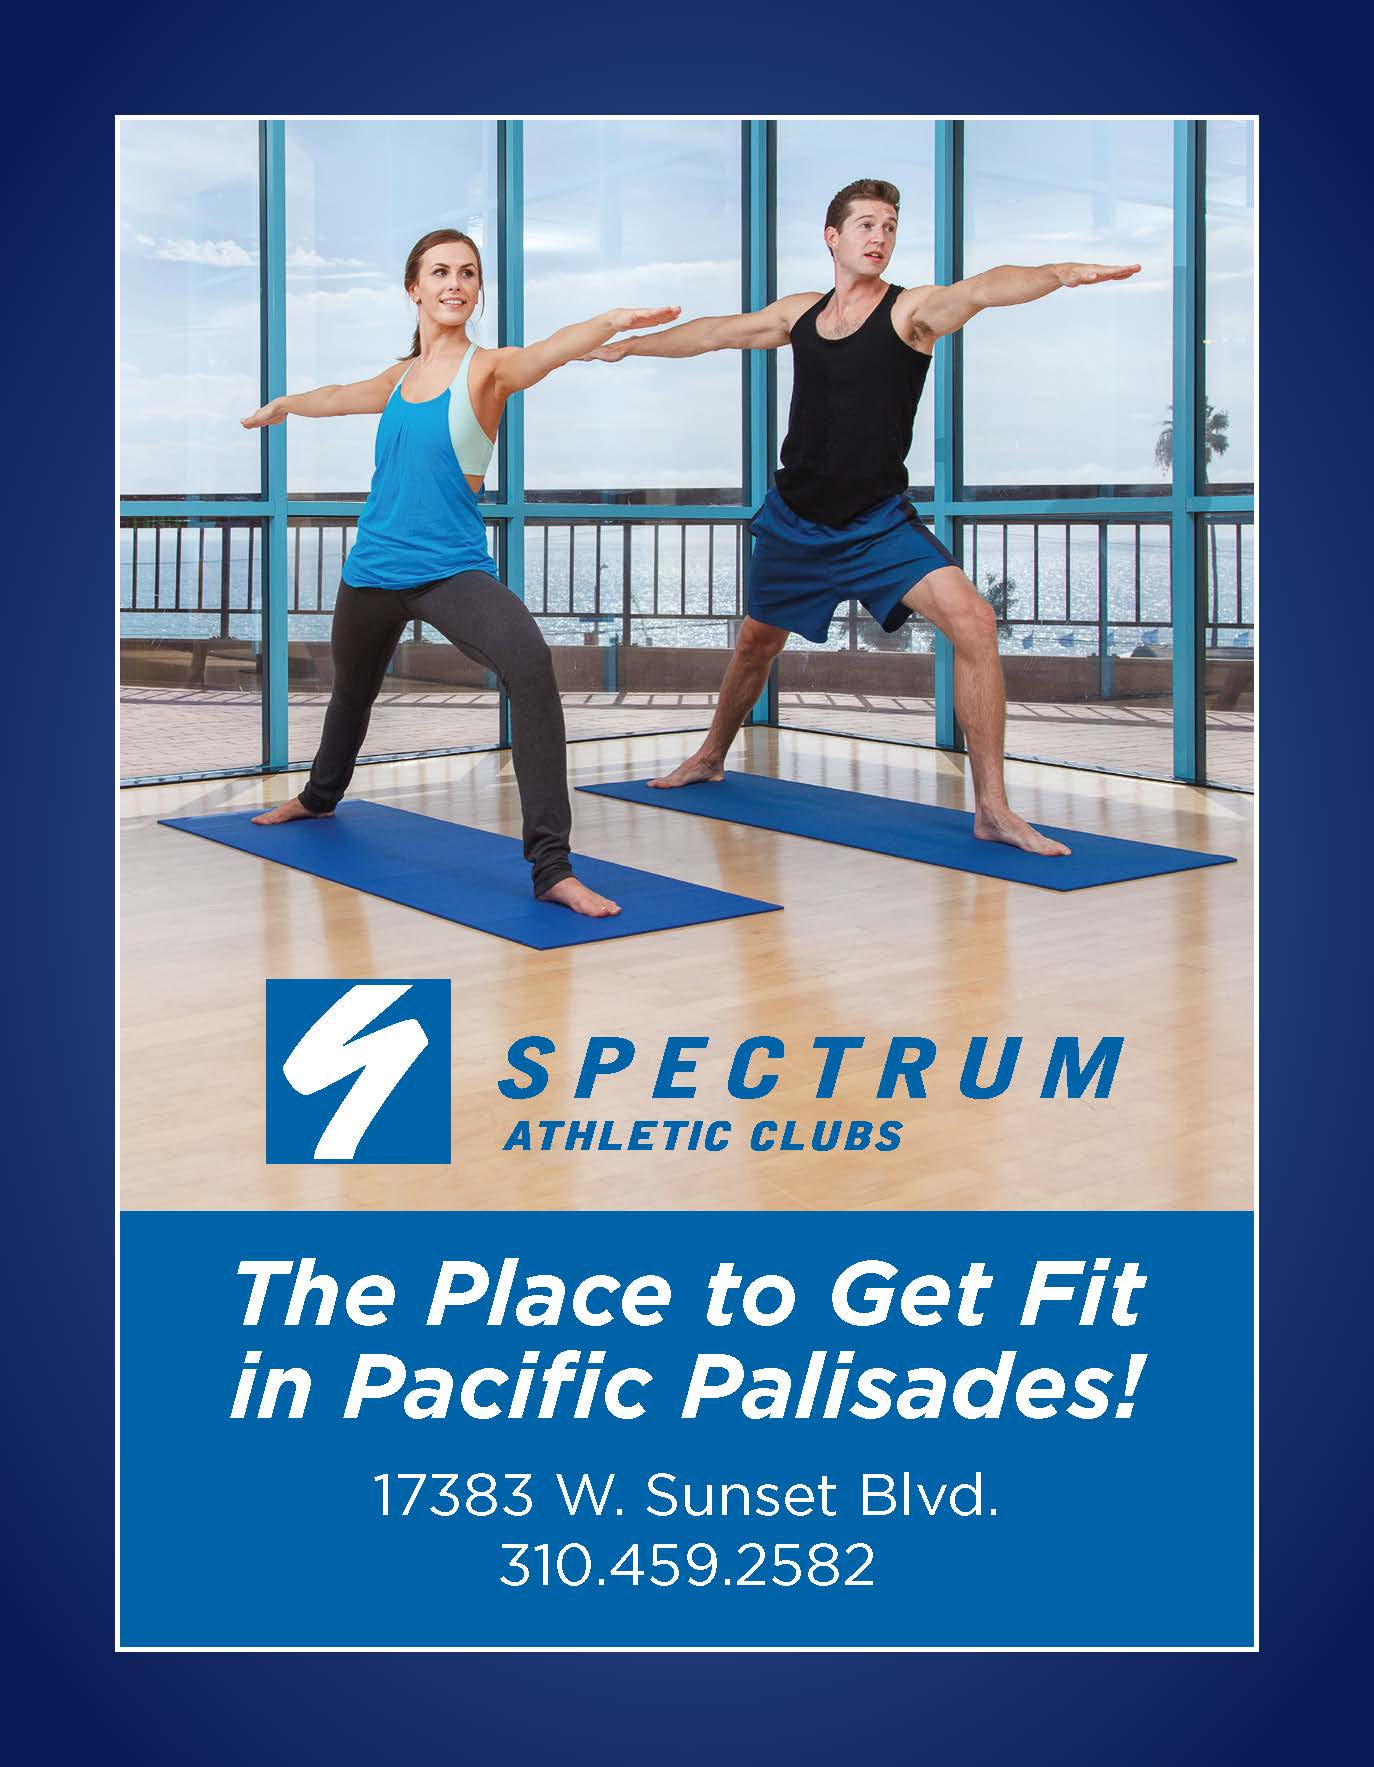 Spectrum Athletic Clubs